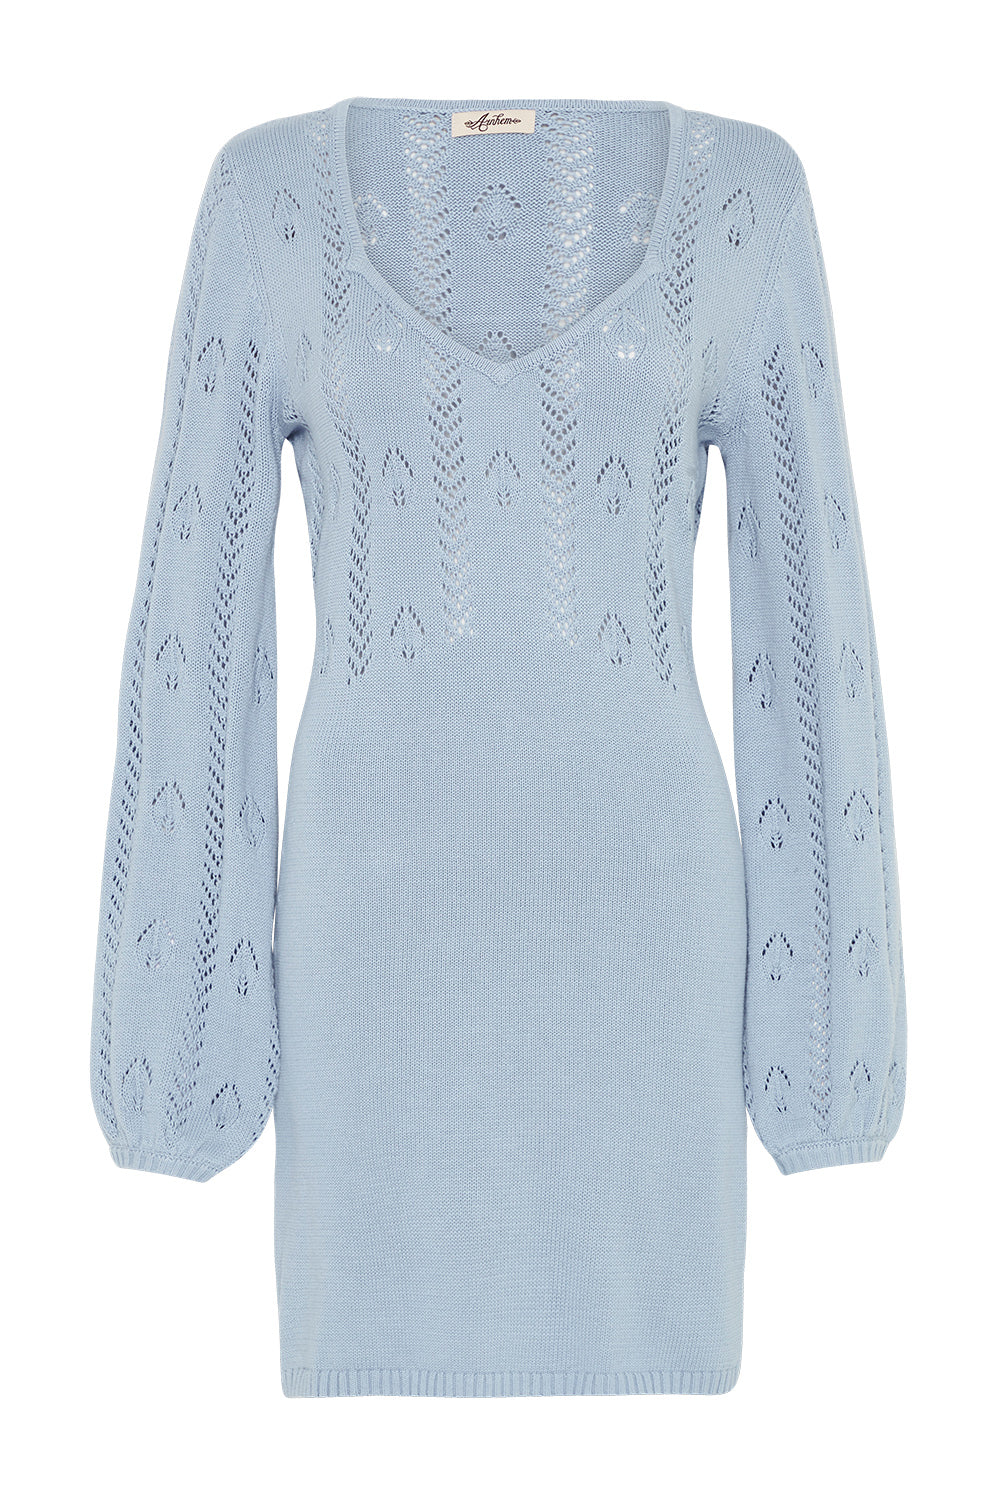 Gardenia Mini Dress in Powder Blue